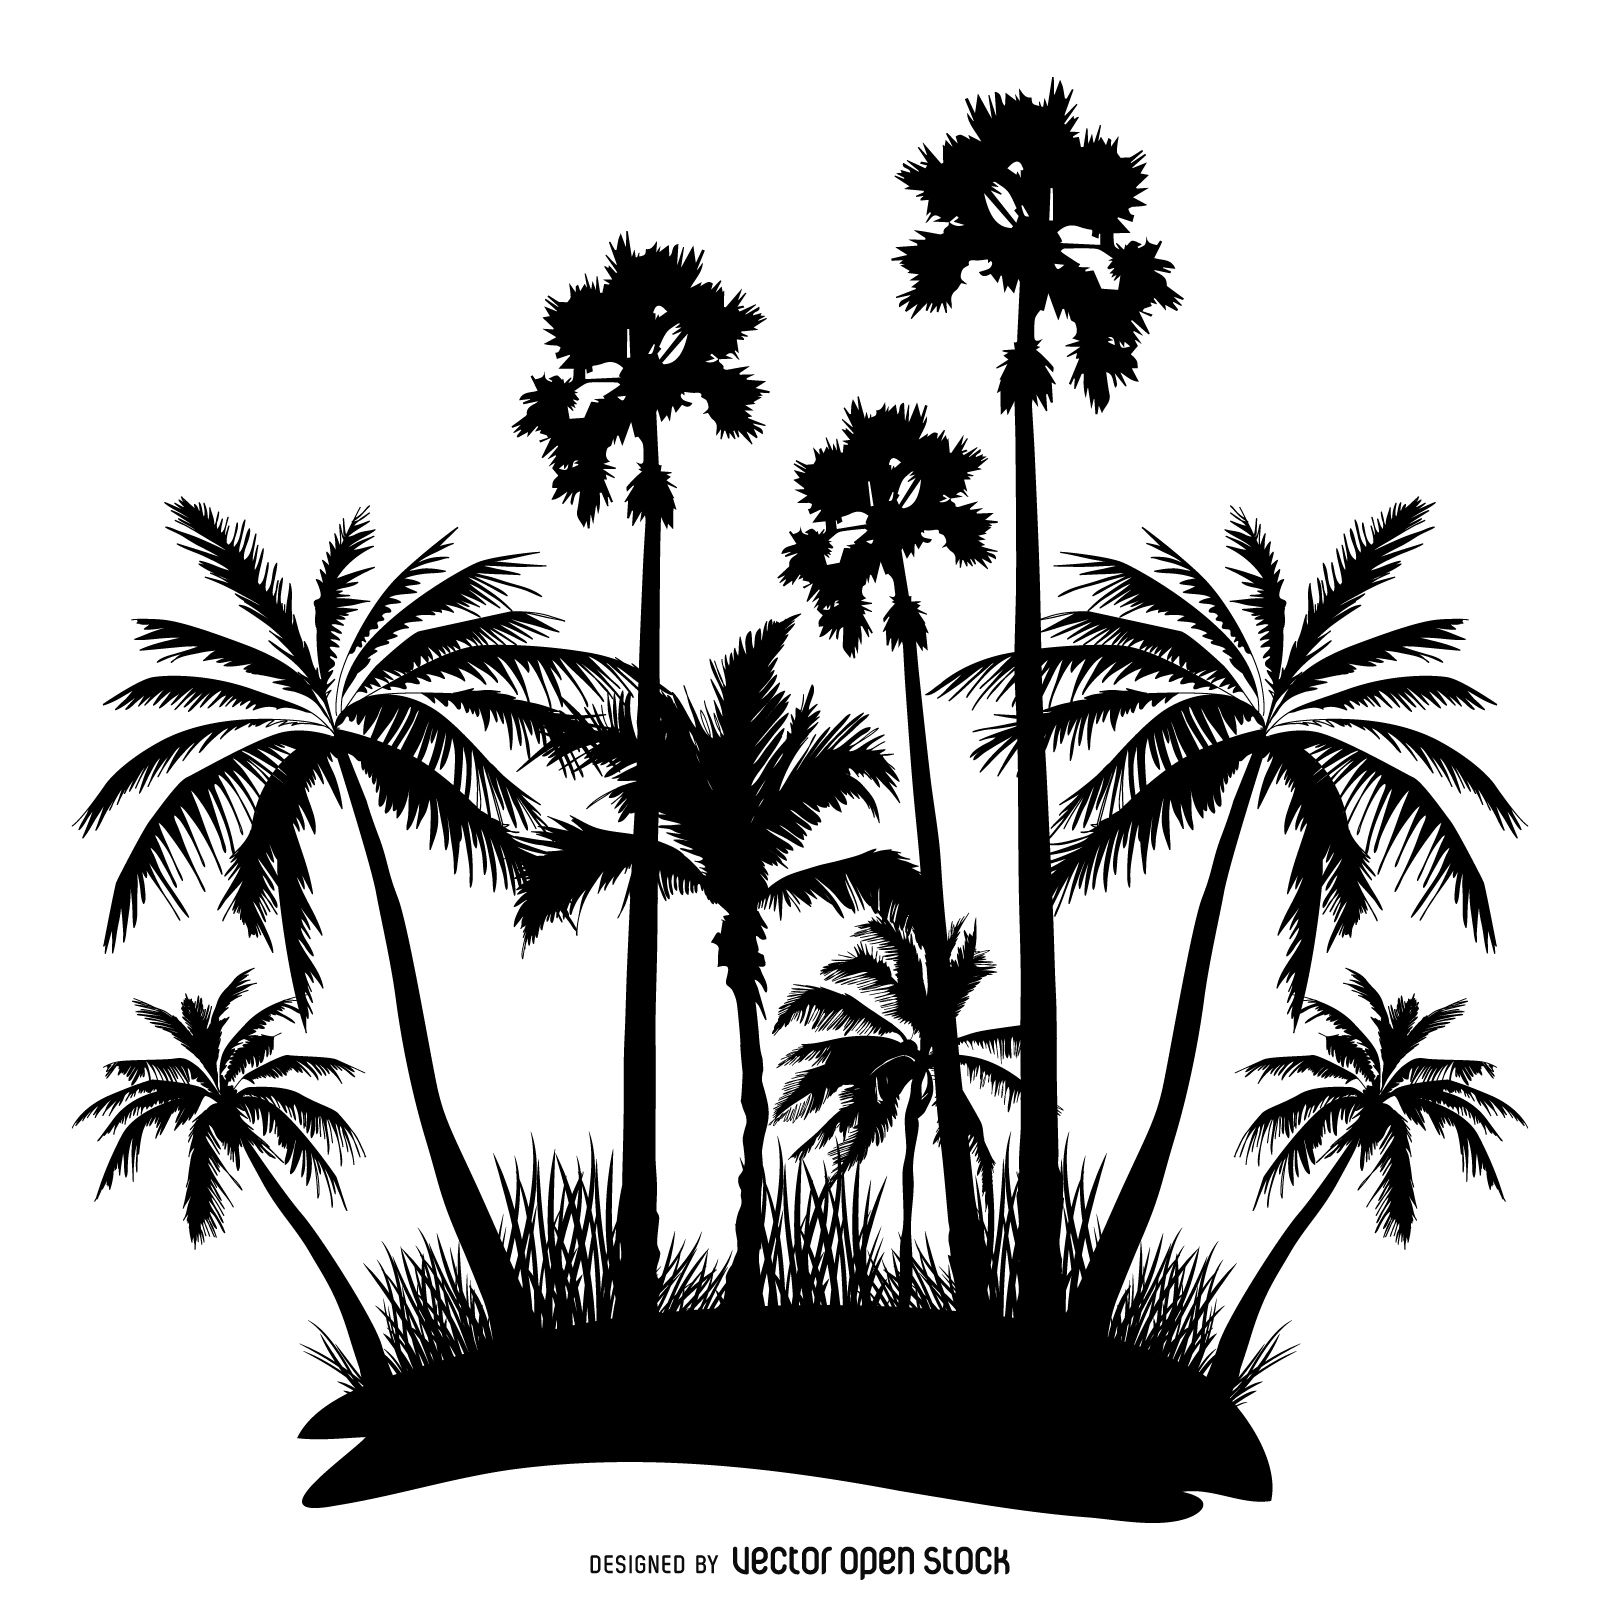 1600x1600 Illustrated Palm Trees Silhouettes In Black Over White. Design